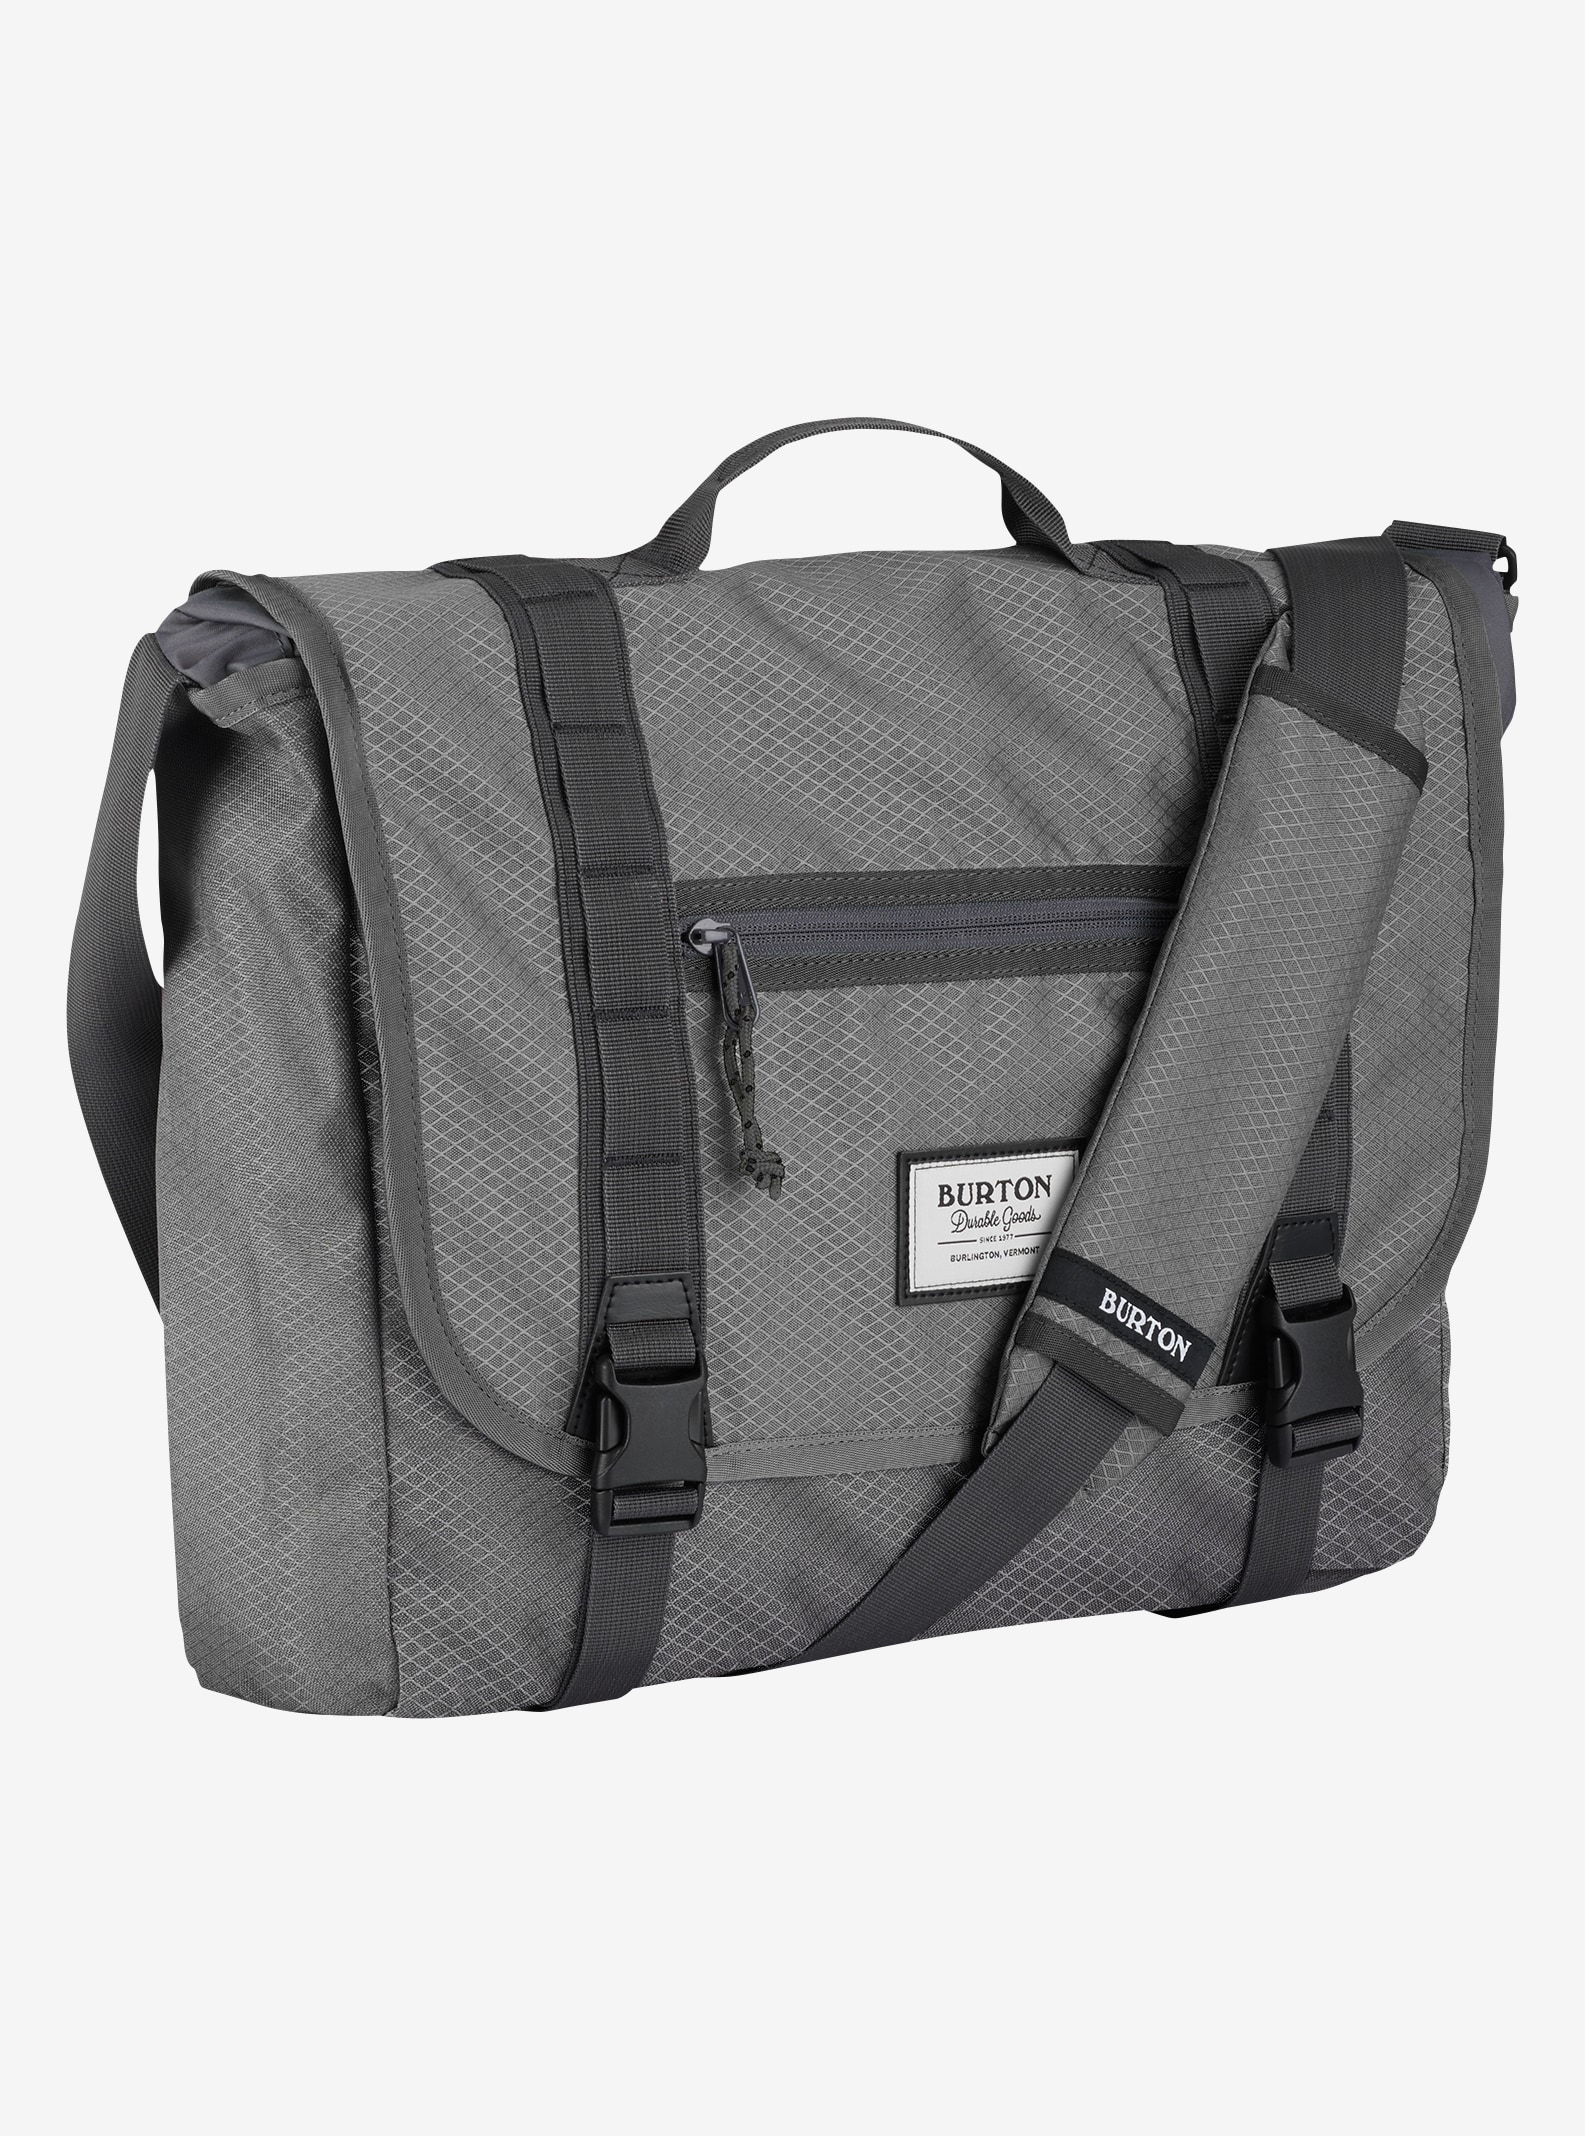 Burton Flint Messenger Bag shown in Faded Diamond Ripstop